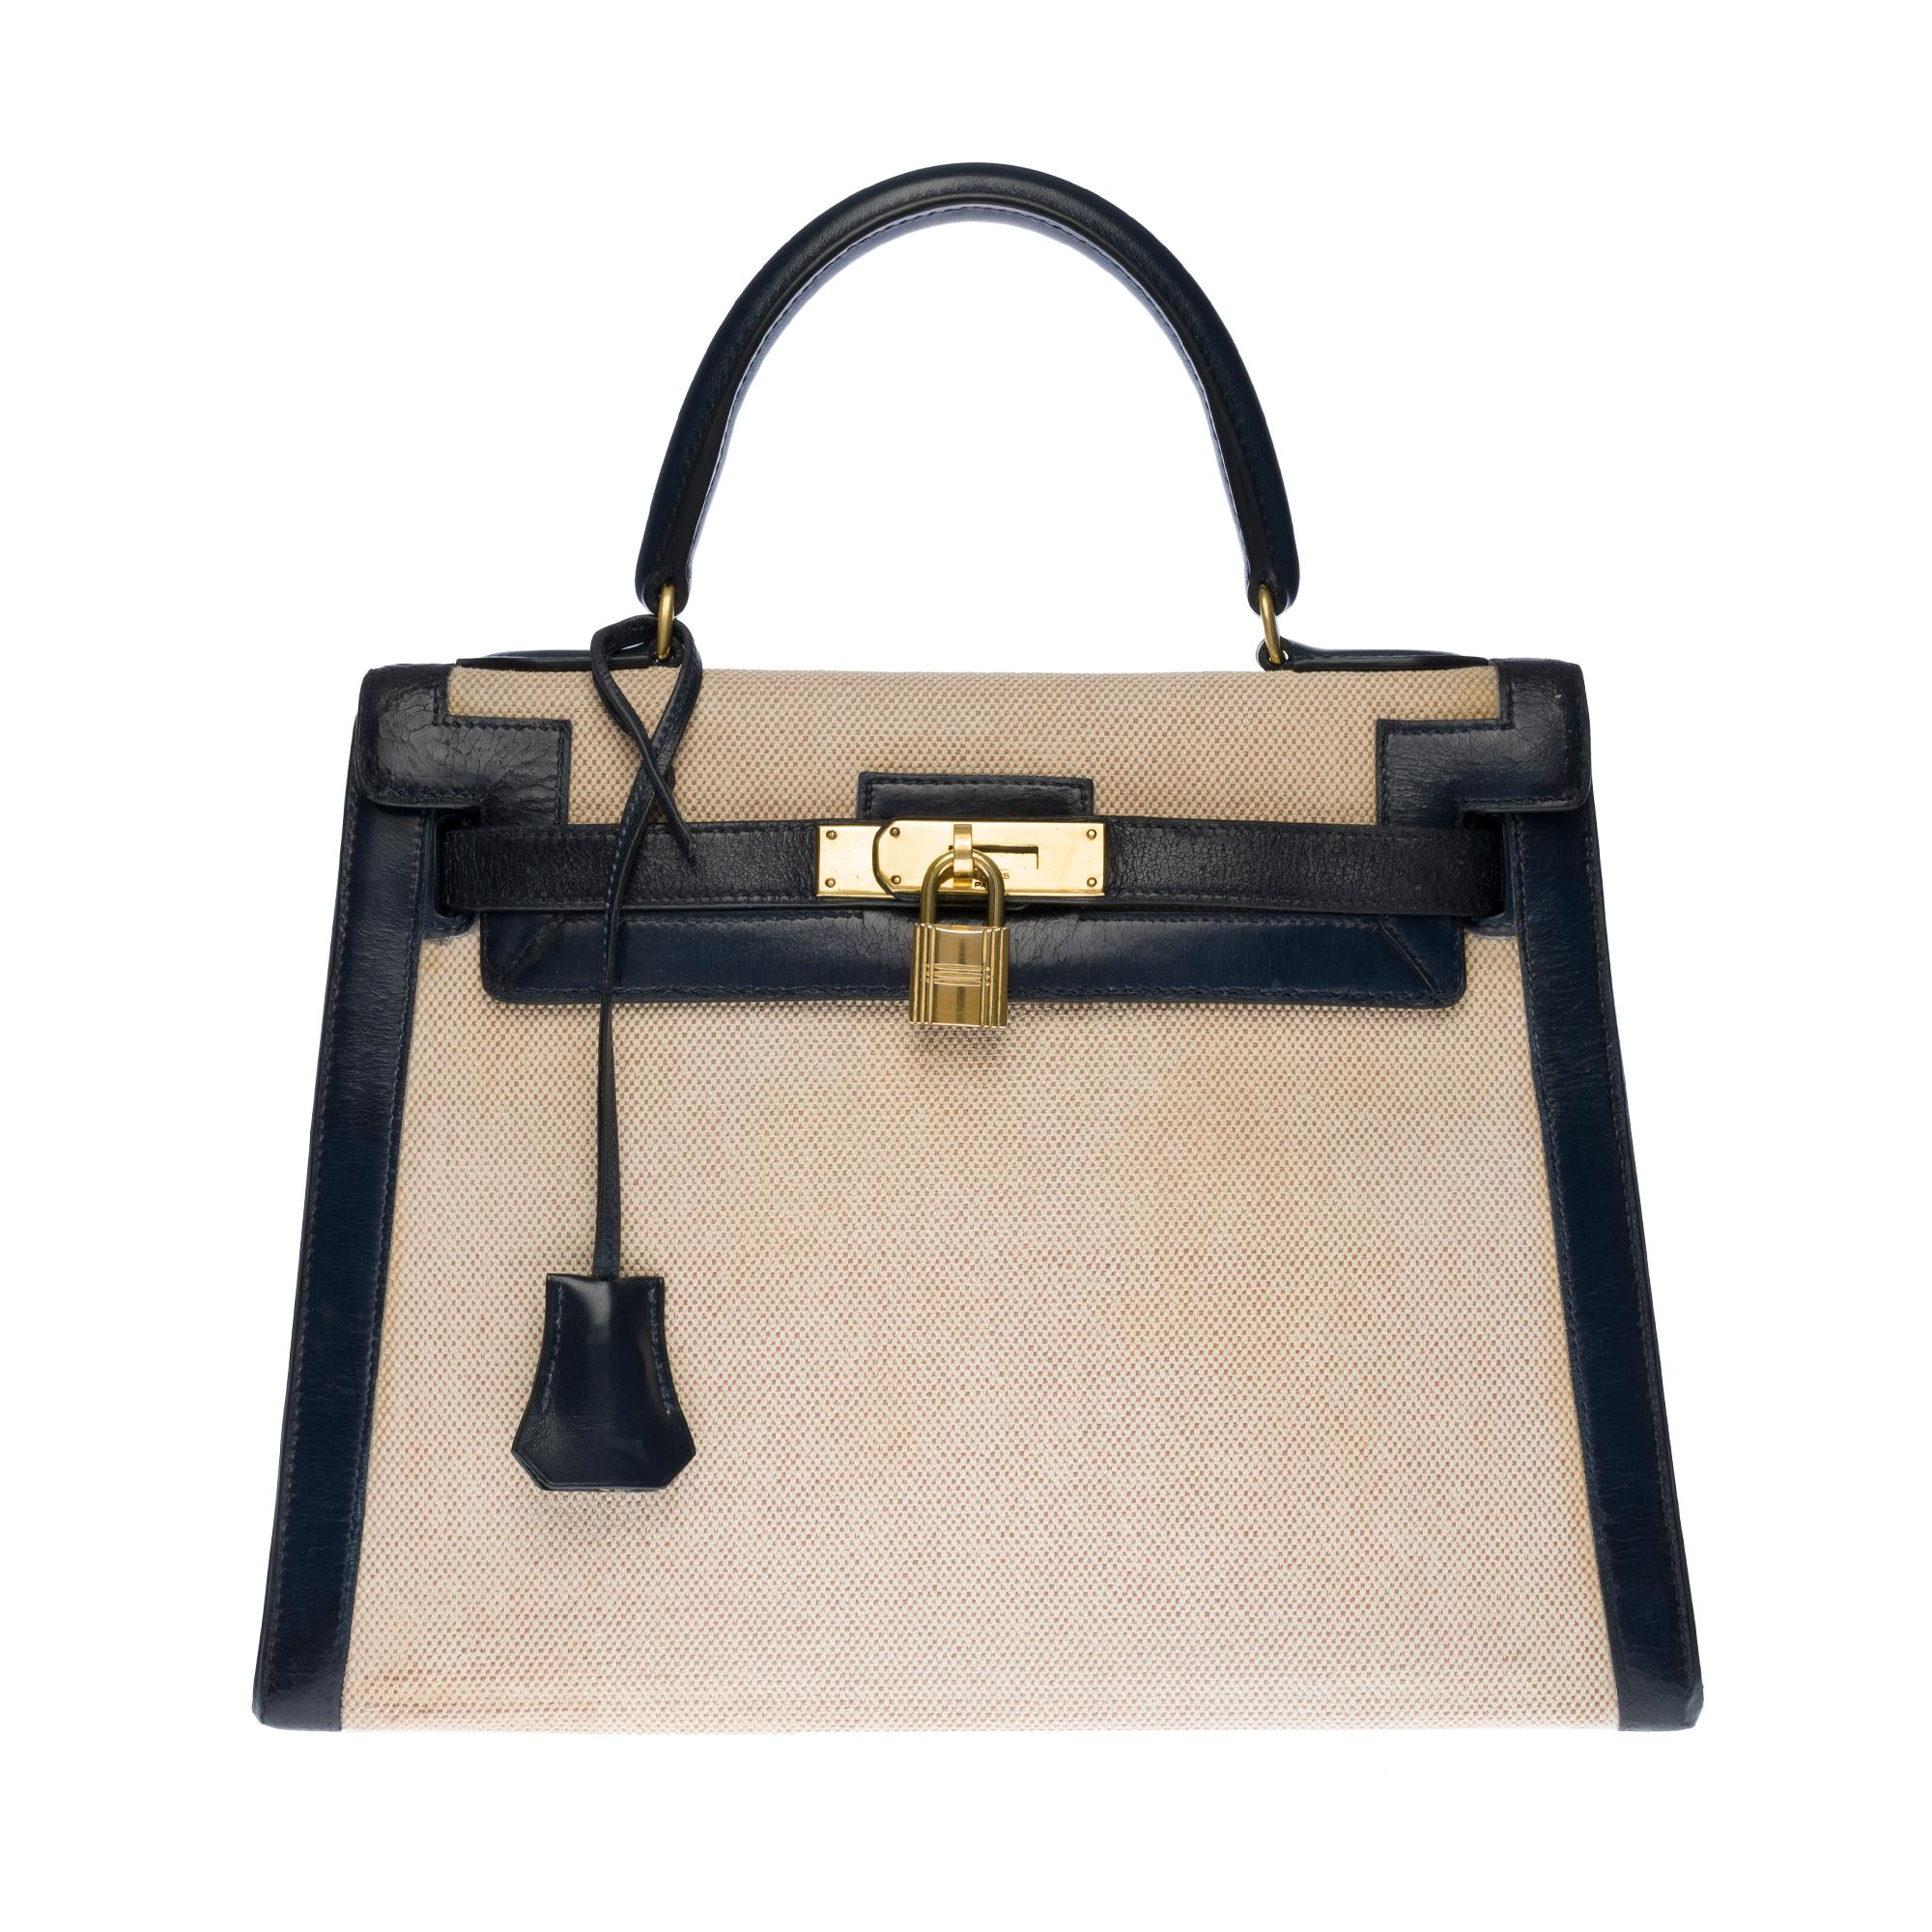 Rare Hermès Kelly 28 handbag in beige canvas and navy blue calf leather, GHW